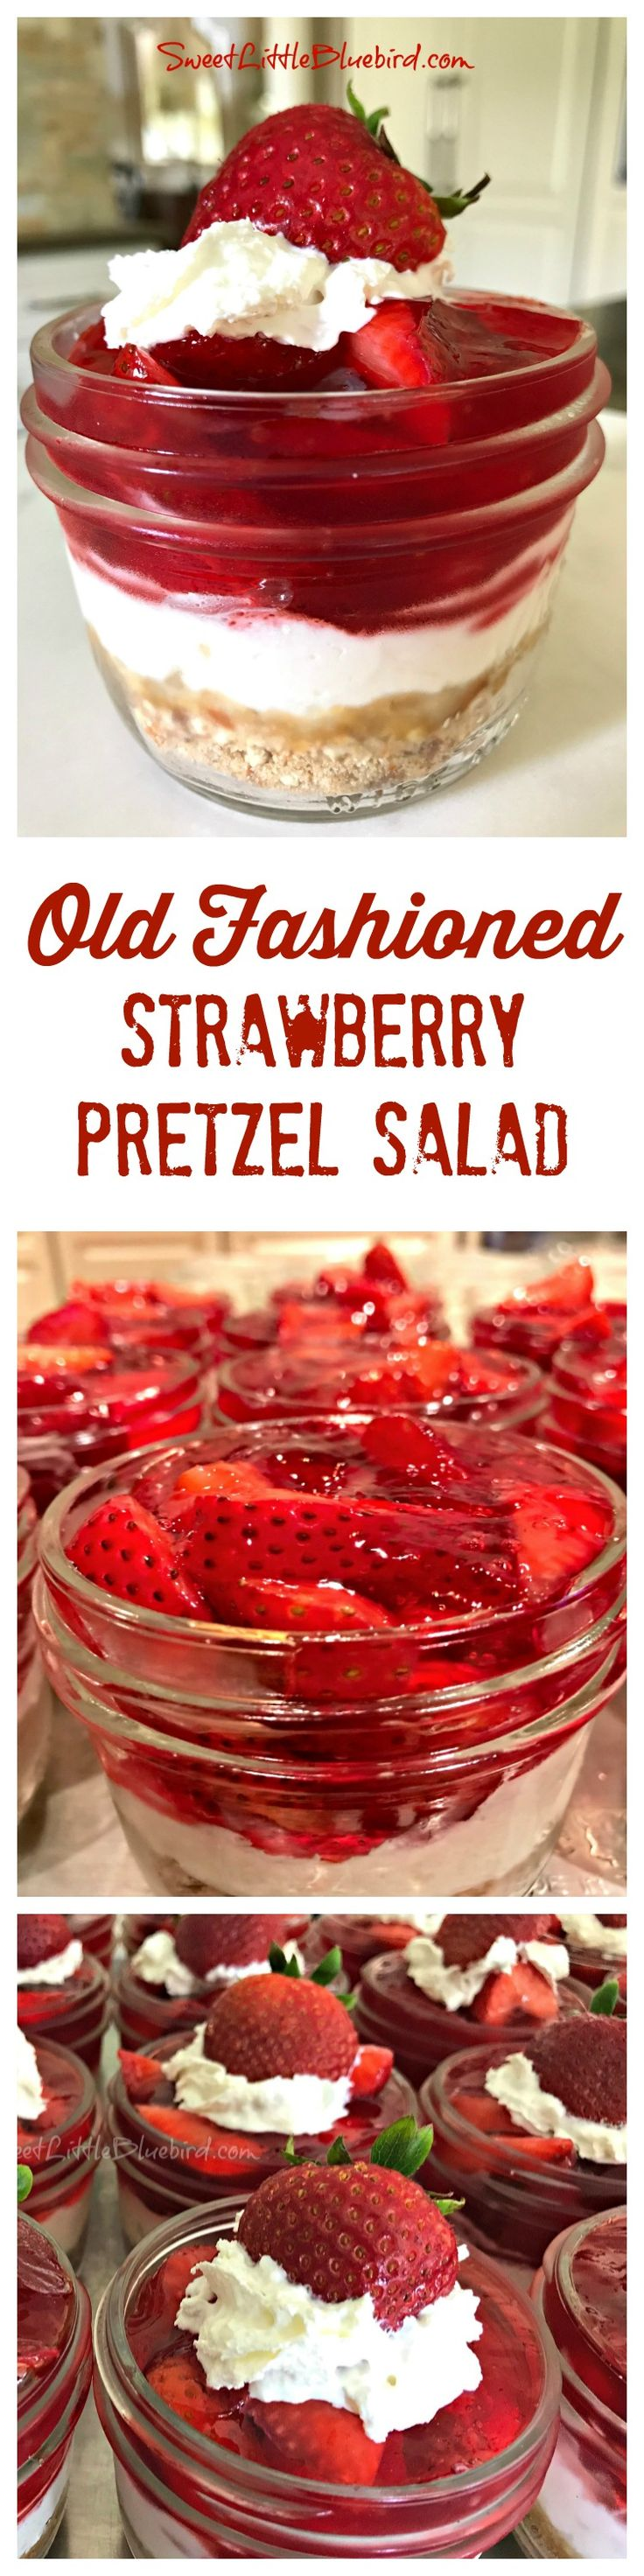 OLD FASHIONED STRAWBERRY PRETZEL SALAD -  A nostalgic dessert enjoyed since the 1960s, served any time of year   for the holidays, potlucks, parties. Sweet and salty, strawberry, cheesecake-y perfection. This light and irresistible, easy to make dessert, is made in a pan and cut into squares. For an even prettier presentation, it can be served individually in small mason jars.